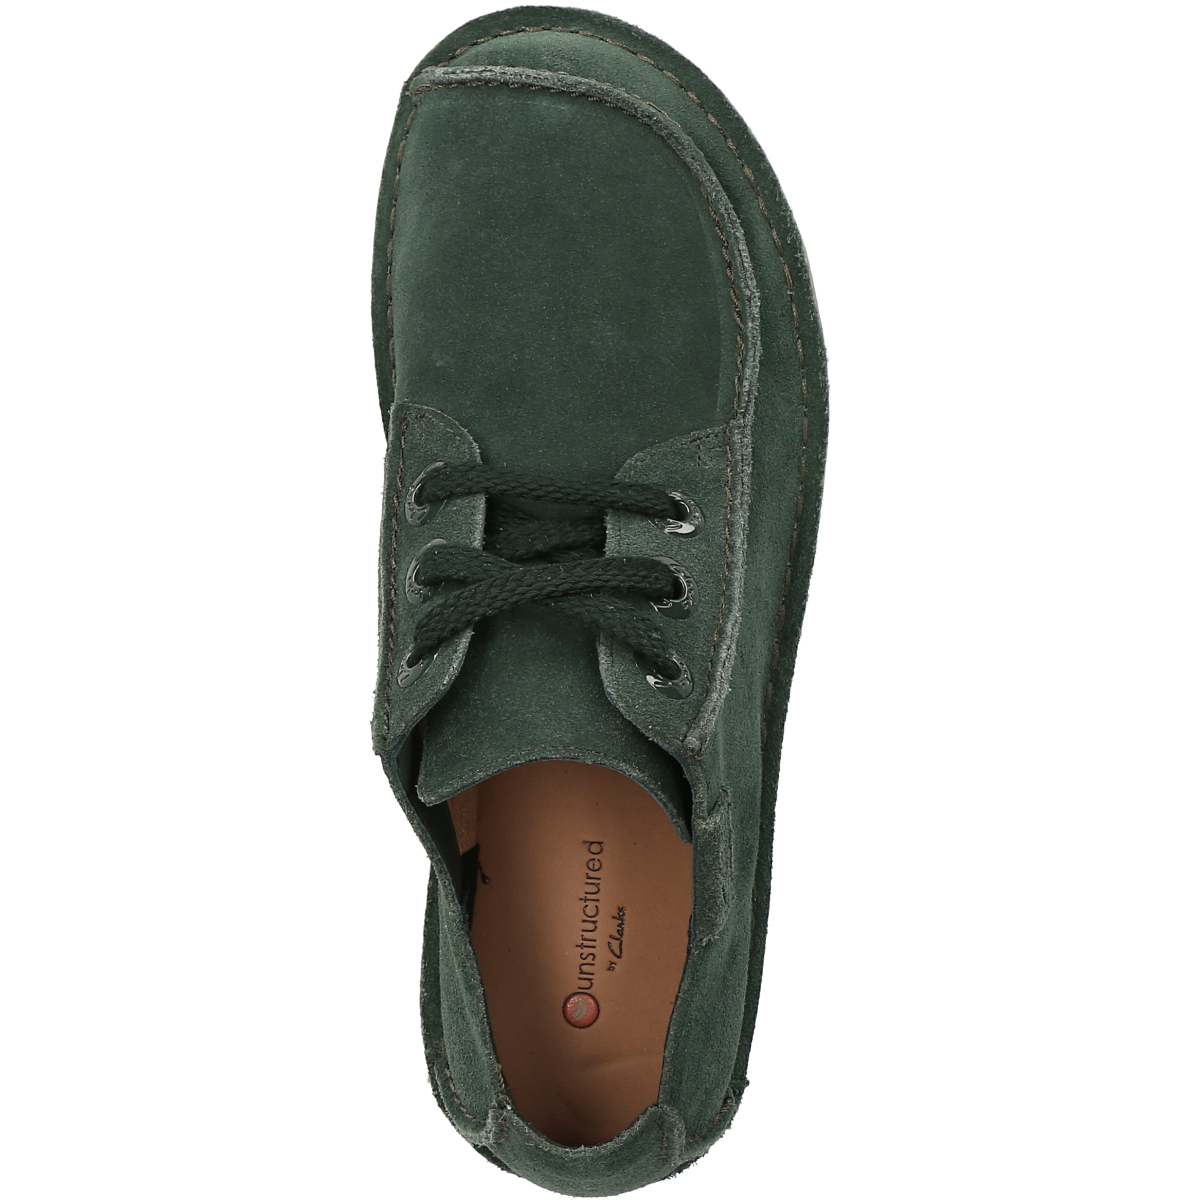 cheap price skate shoes new images of Clarks Funny Dream 26144125 4 Damenschuhe Schnürschuhe im ...